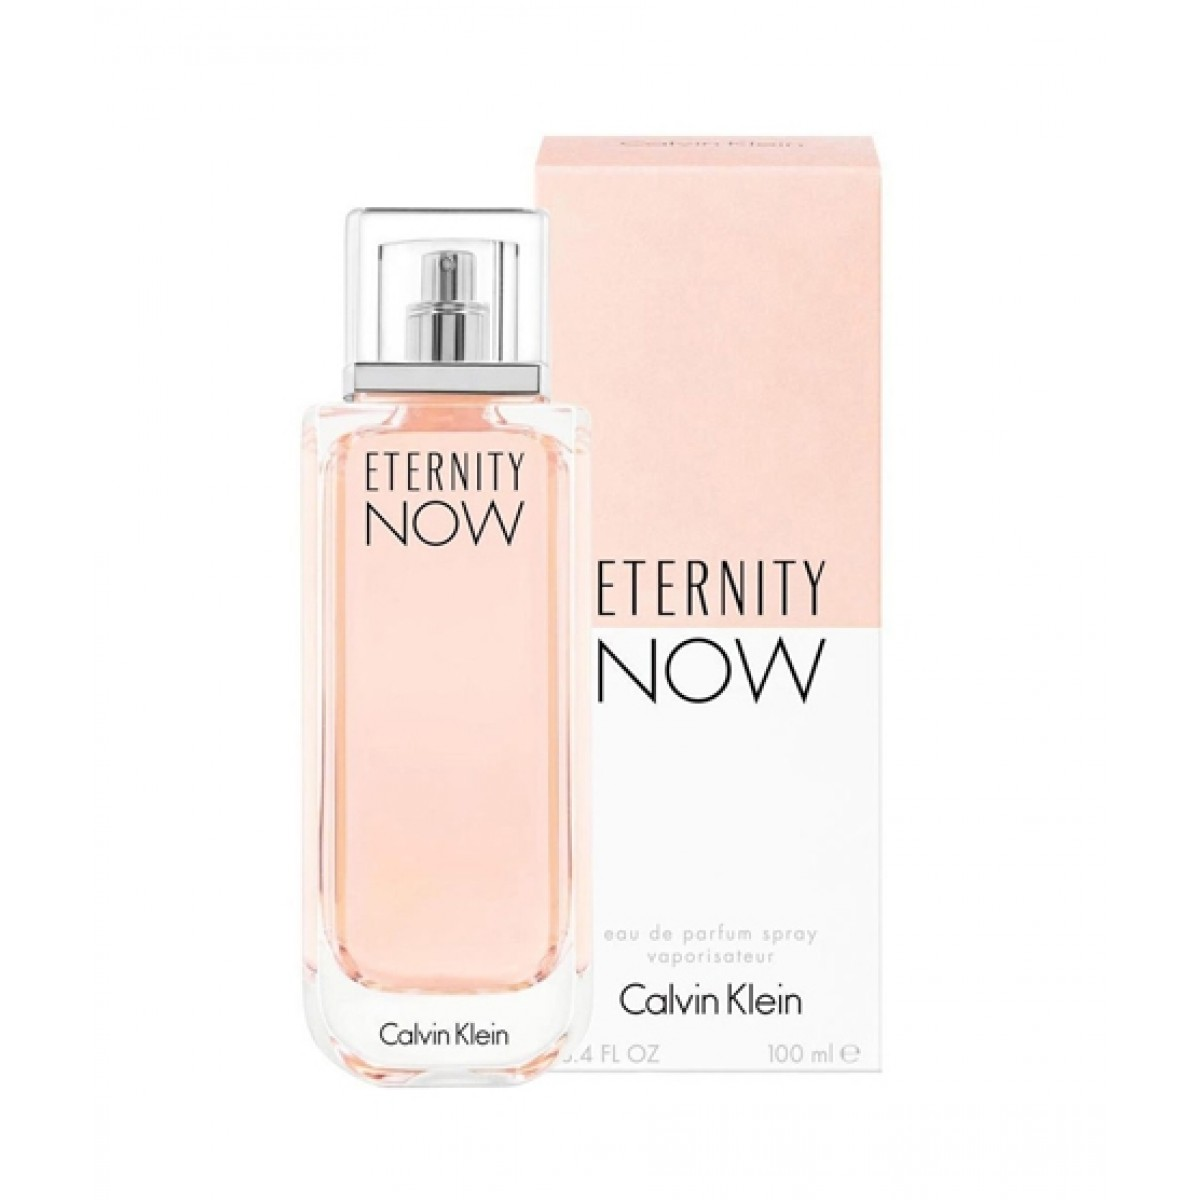 c8673362d Calvin Klein Eternity Eau De Parfum 100ml Price in Pakistan | Buy Calvin  Klein Now Eau De Parfum For Women | iShopping.pk